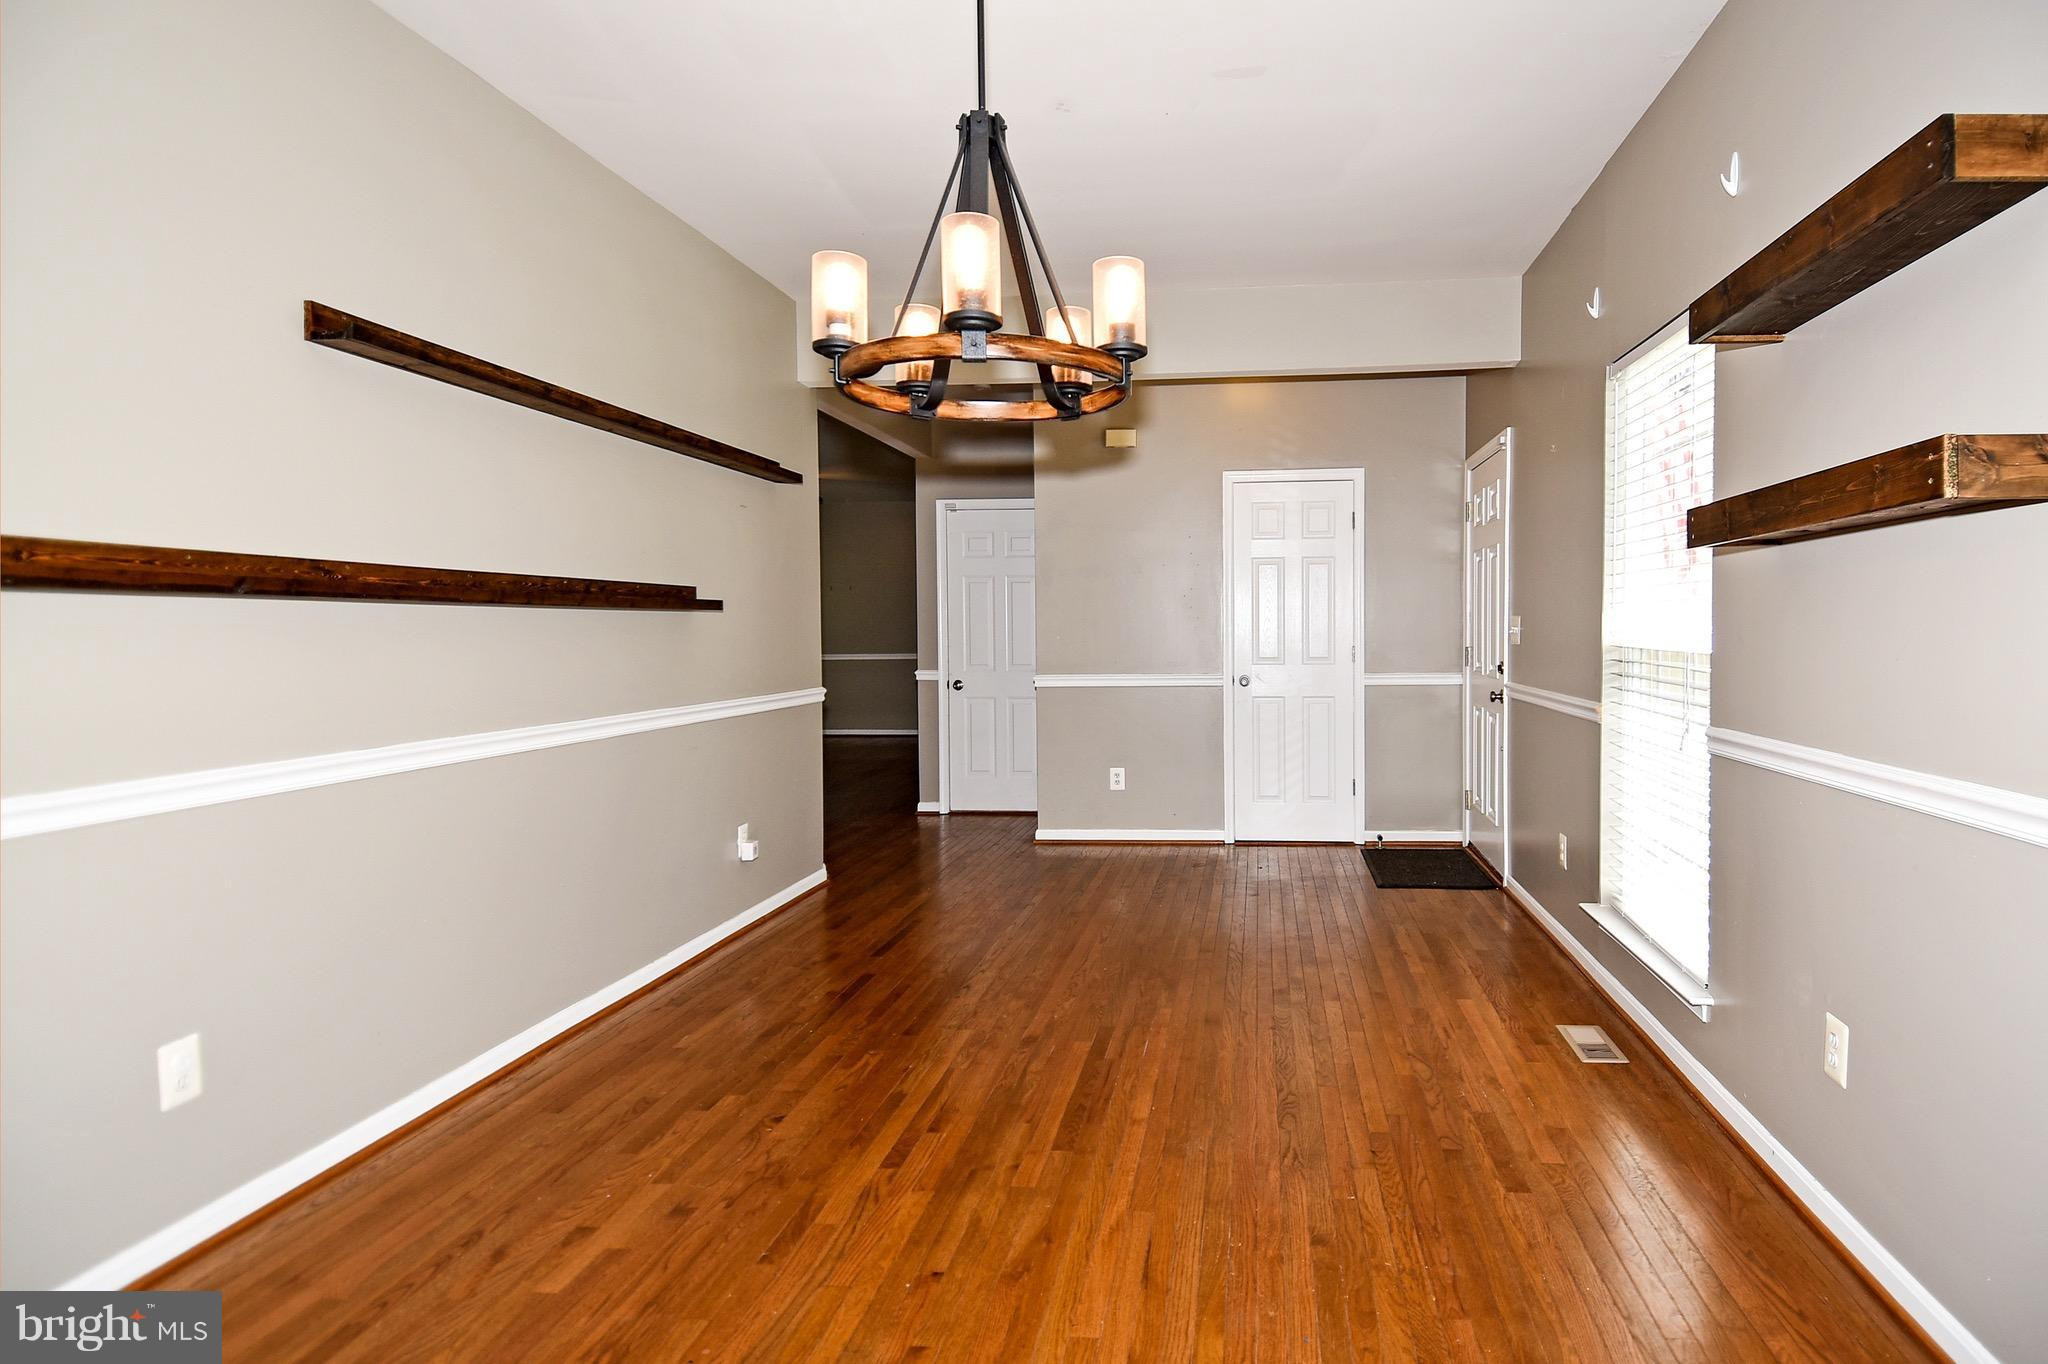 gew hardwood flooring of 2660 pheasant hunt road woodbridge va 22192 re max gateway in 2660 pheasant hunt road woodbridge va 22192